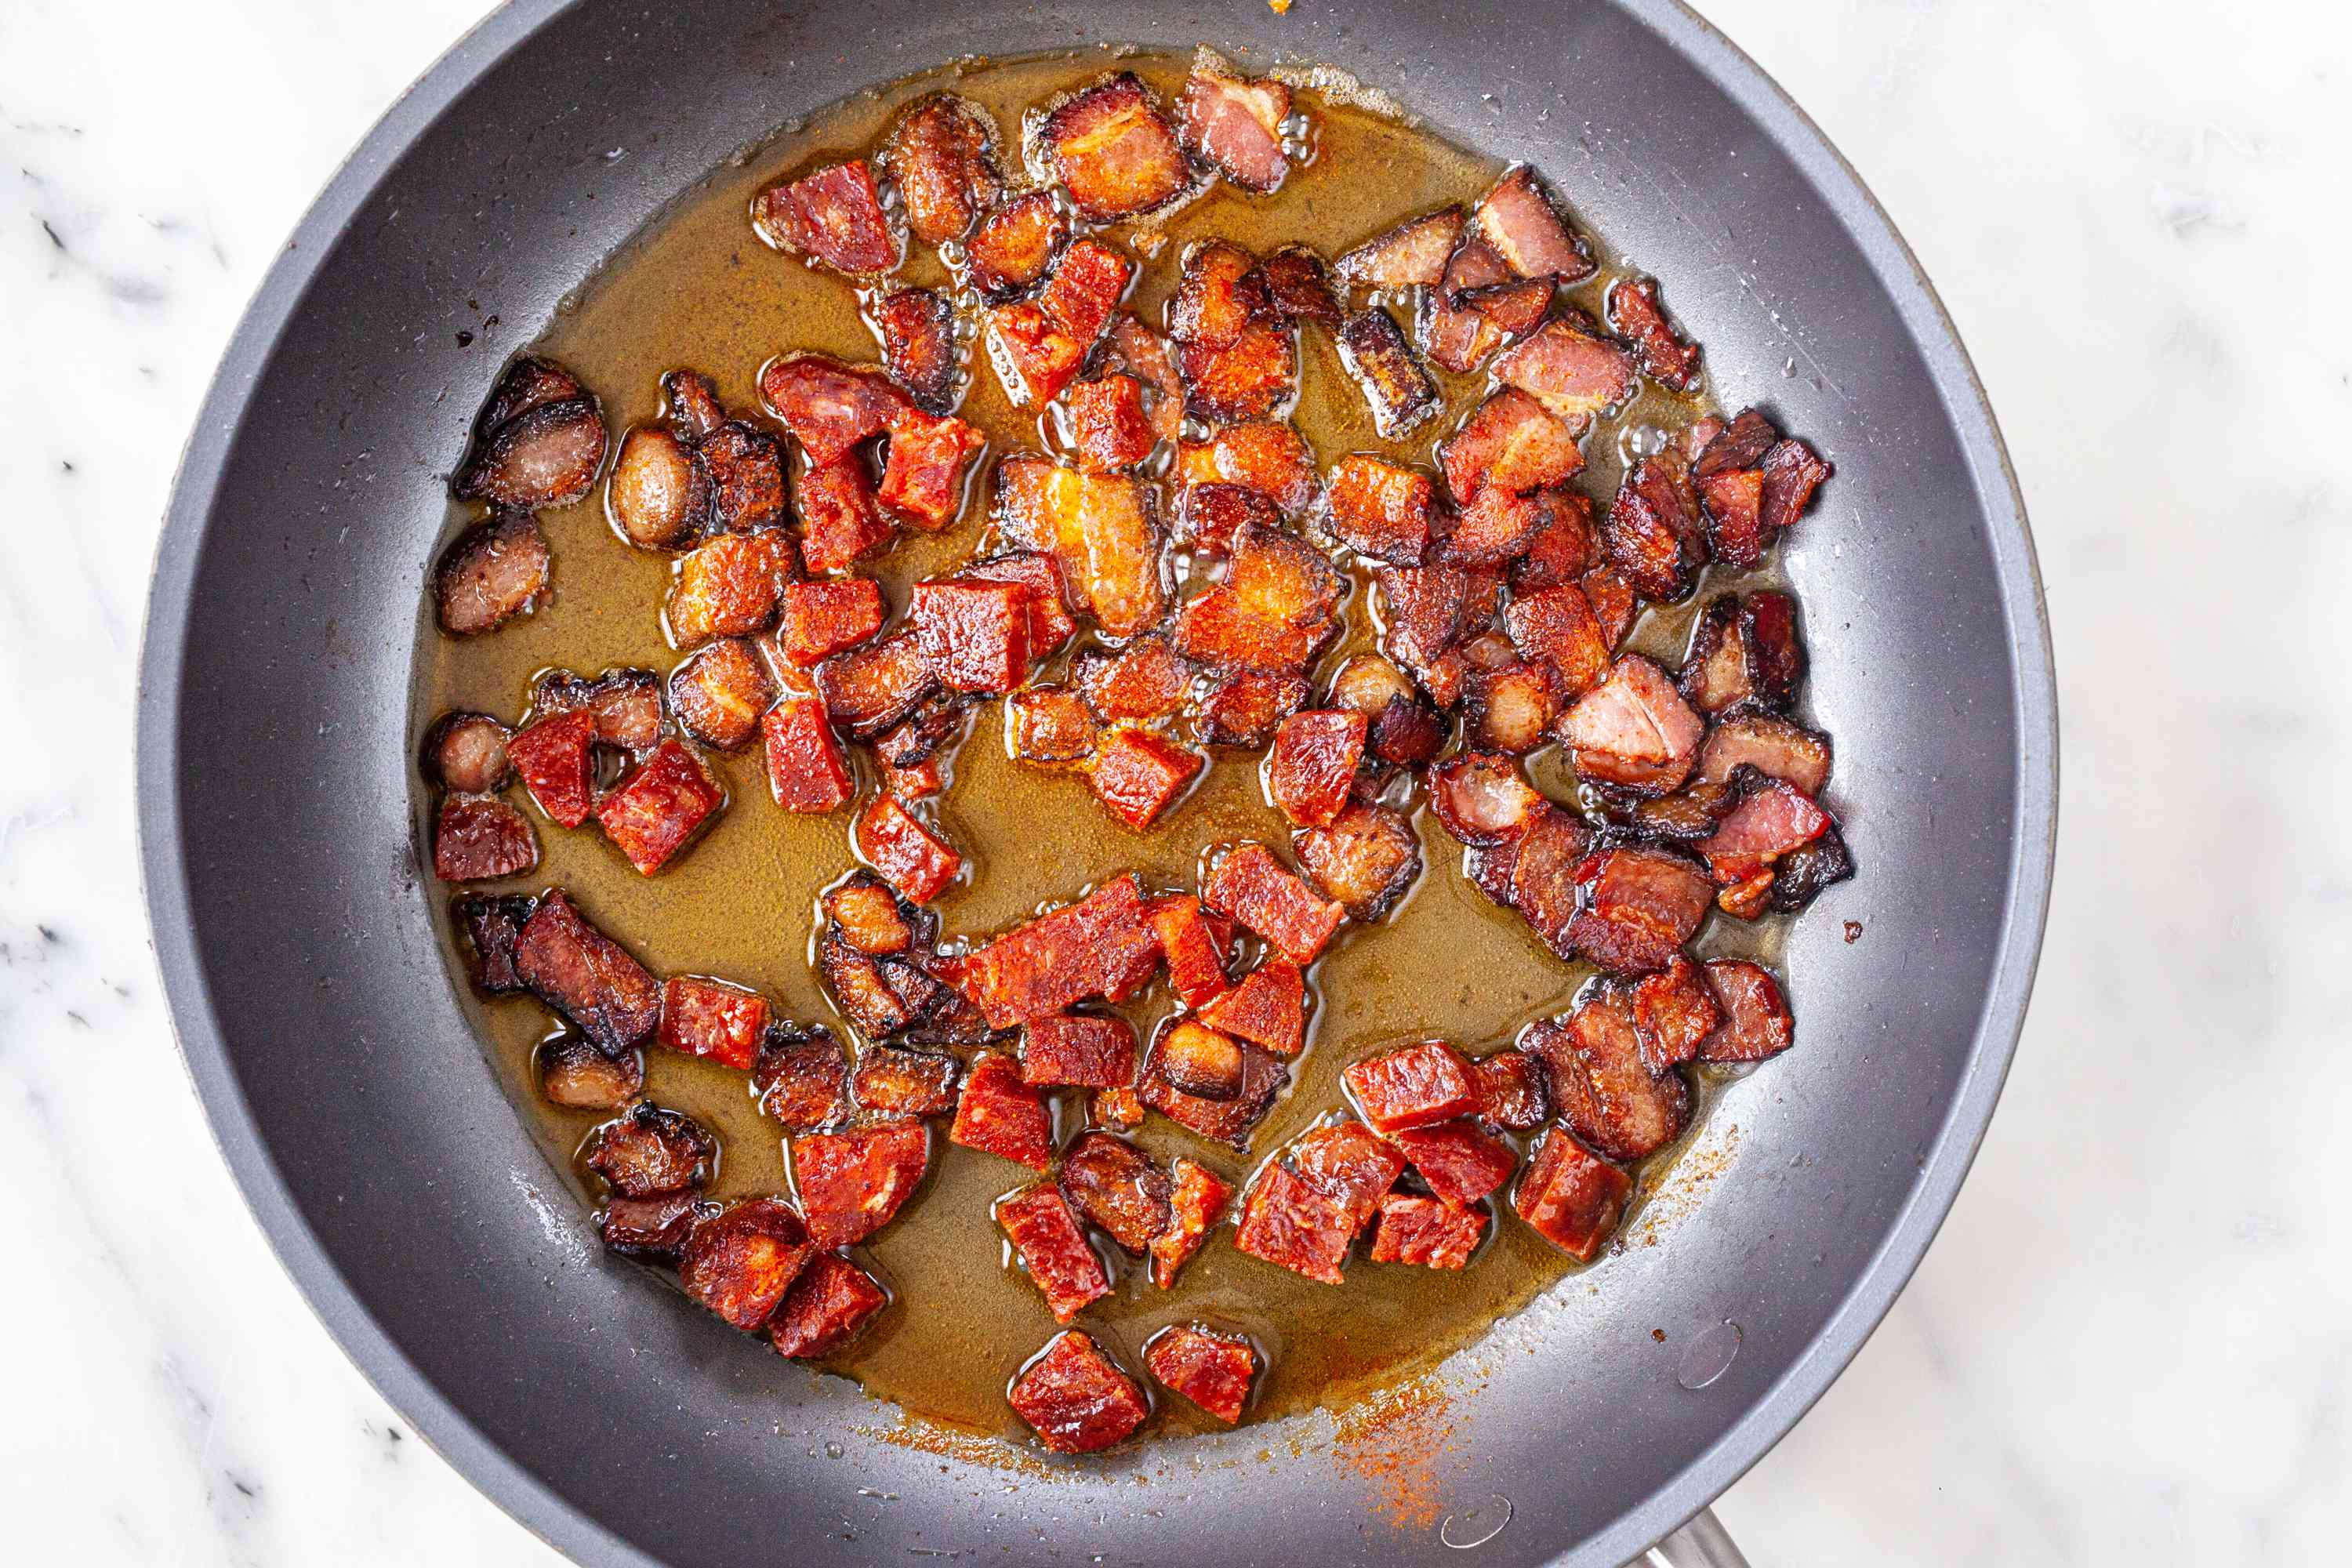 Cooked chorizo and bacon in a skillet to make Spanish Style Migas.